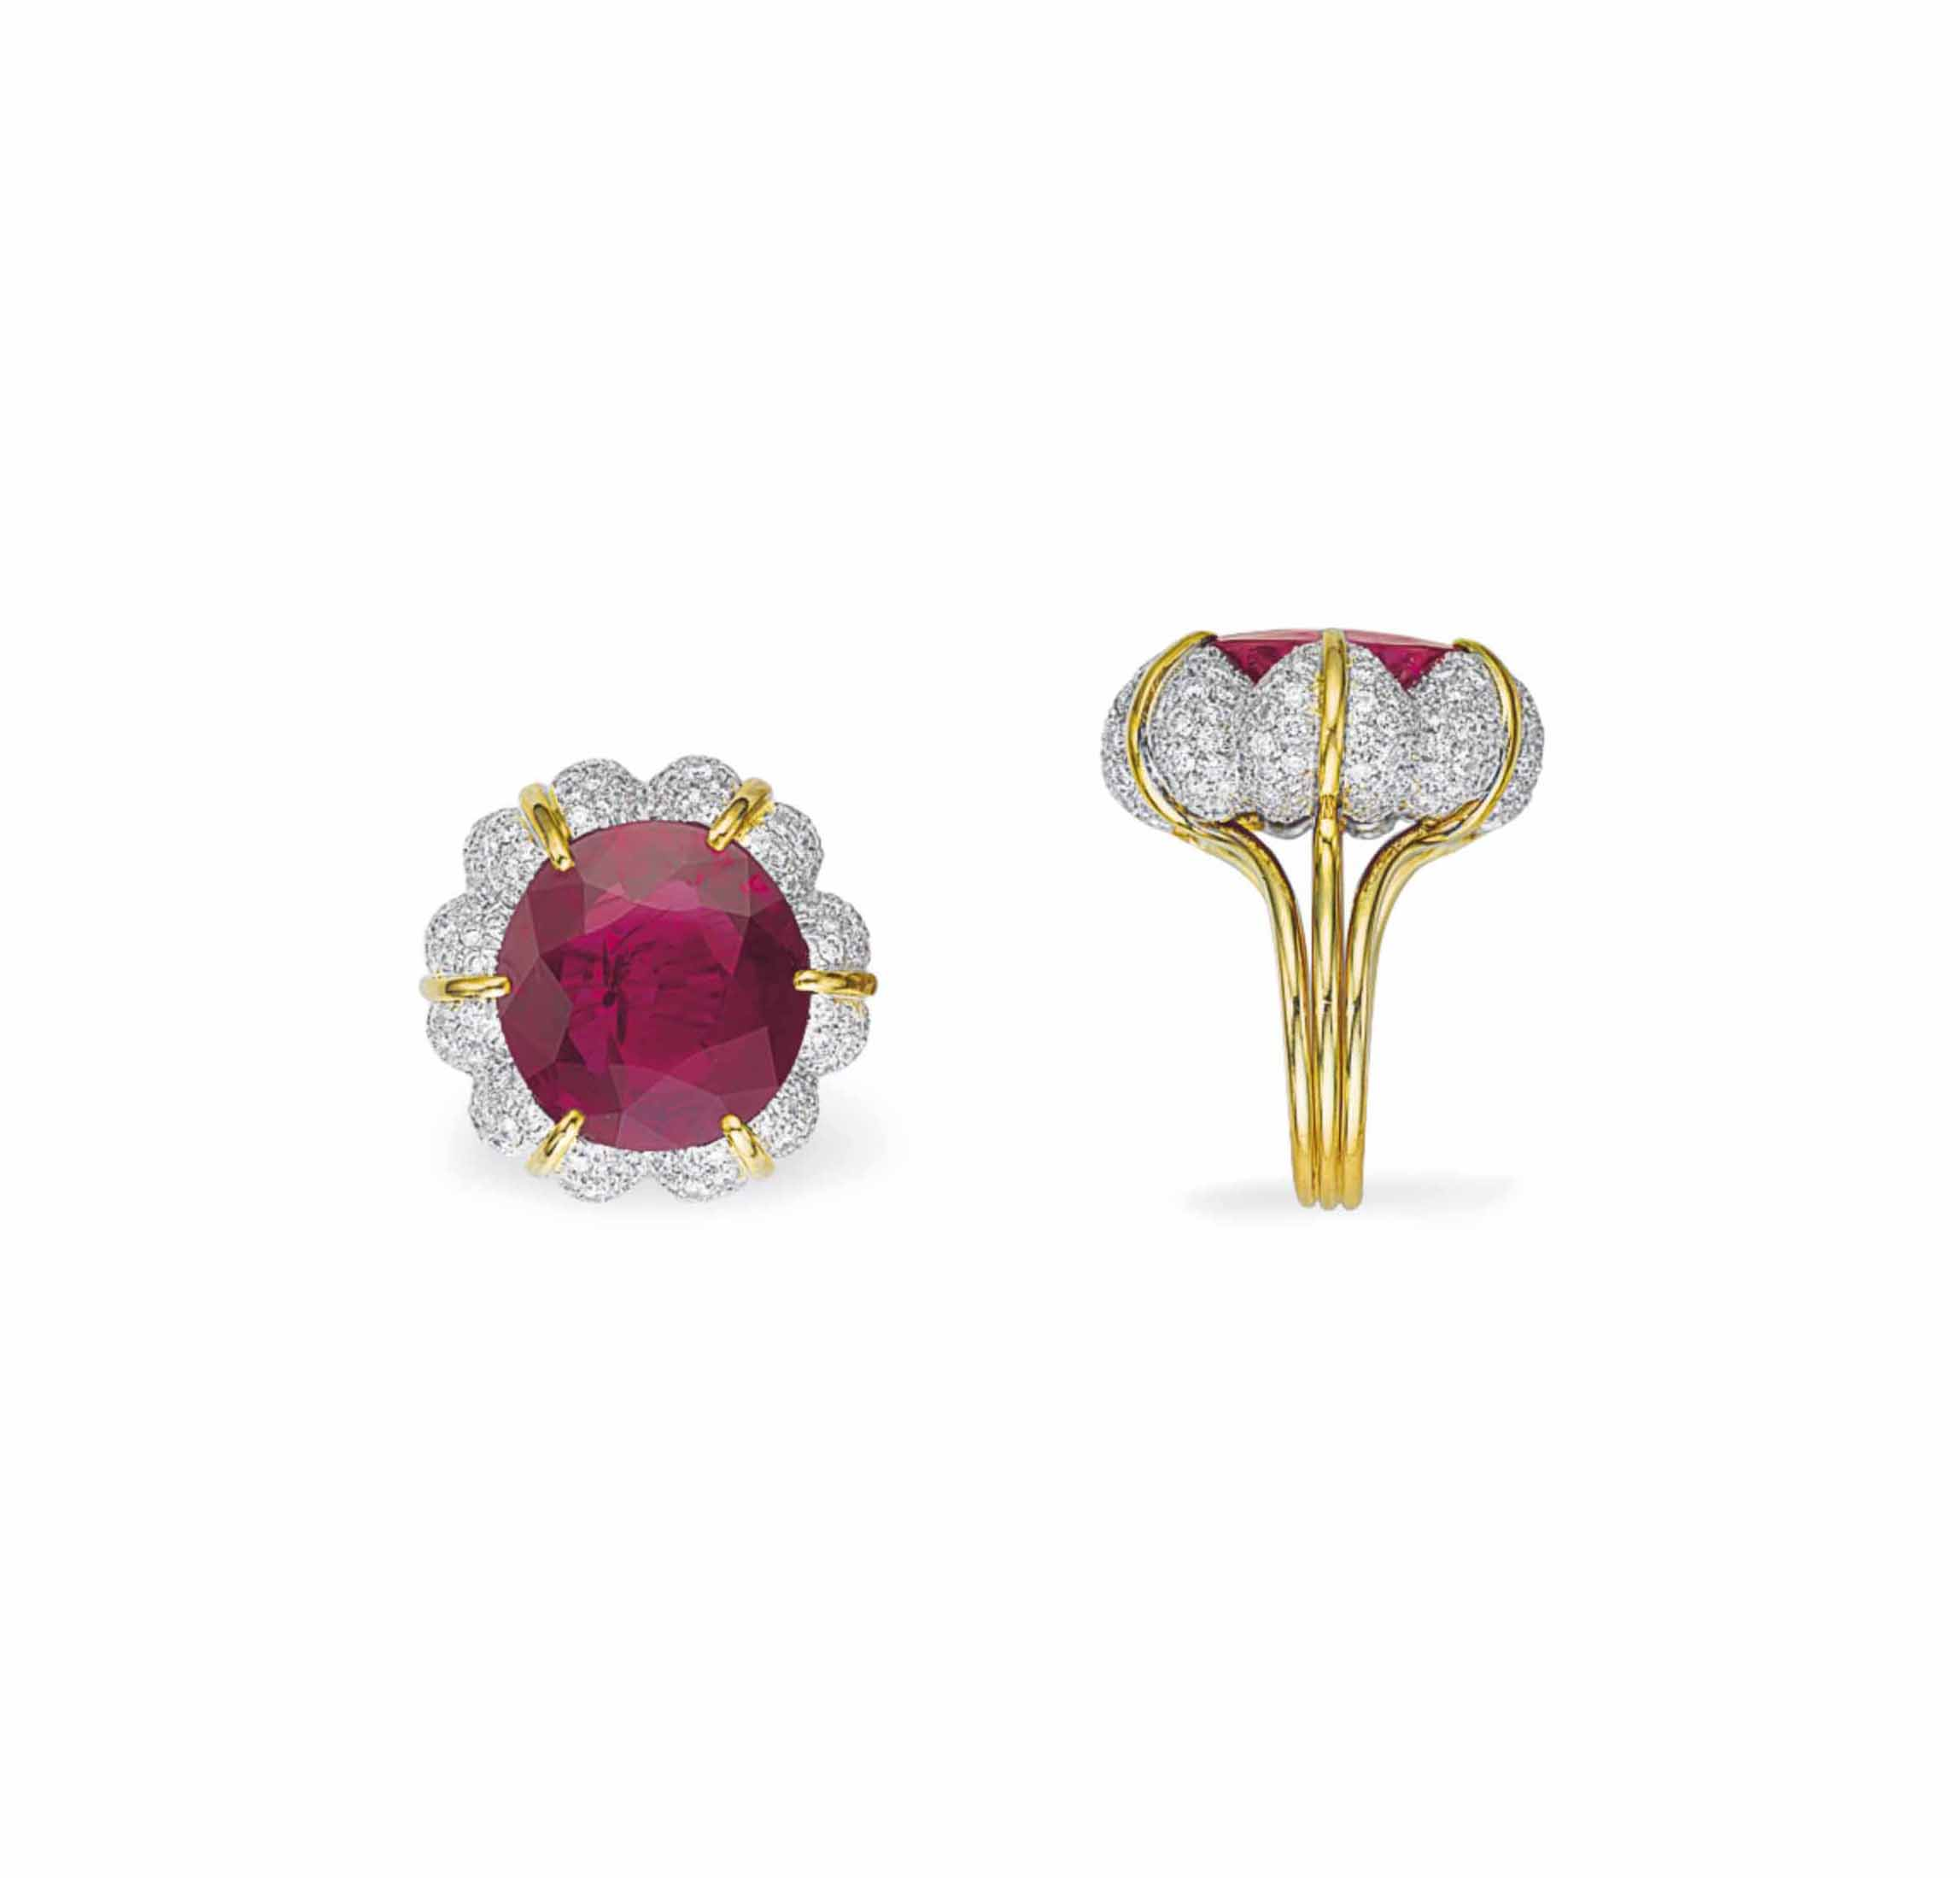 A SENSATIONAL RUBY RING, BY VERDURA